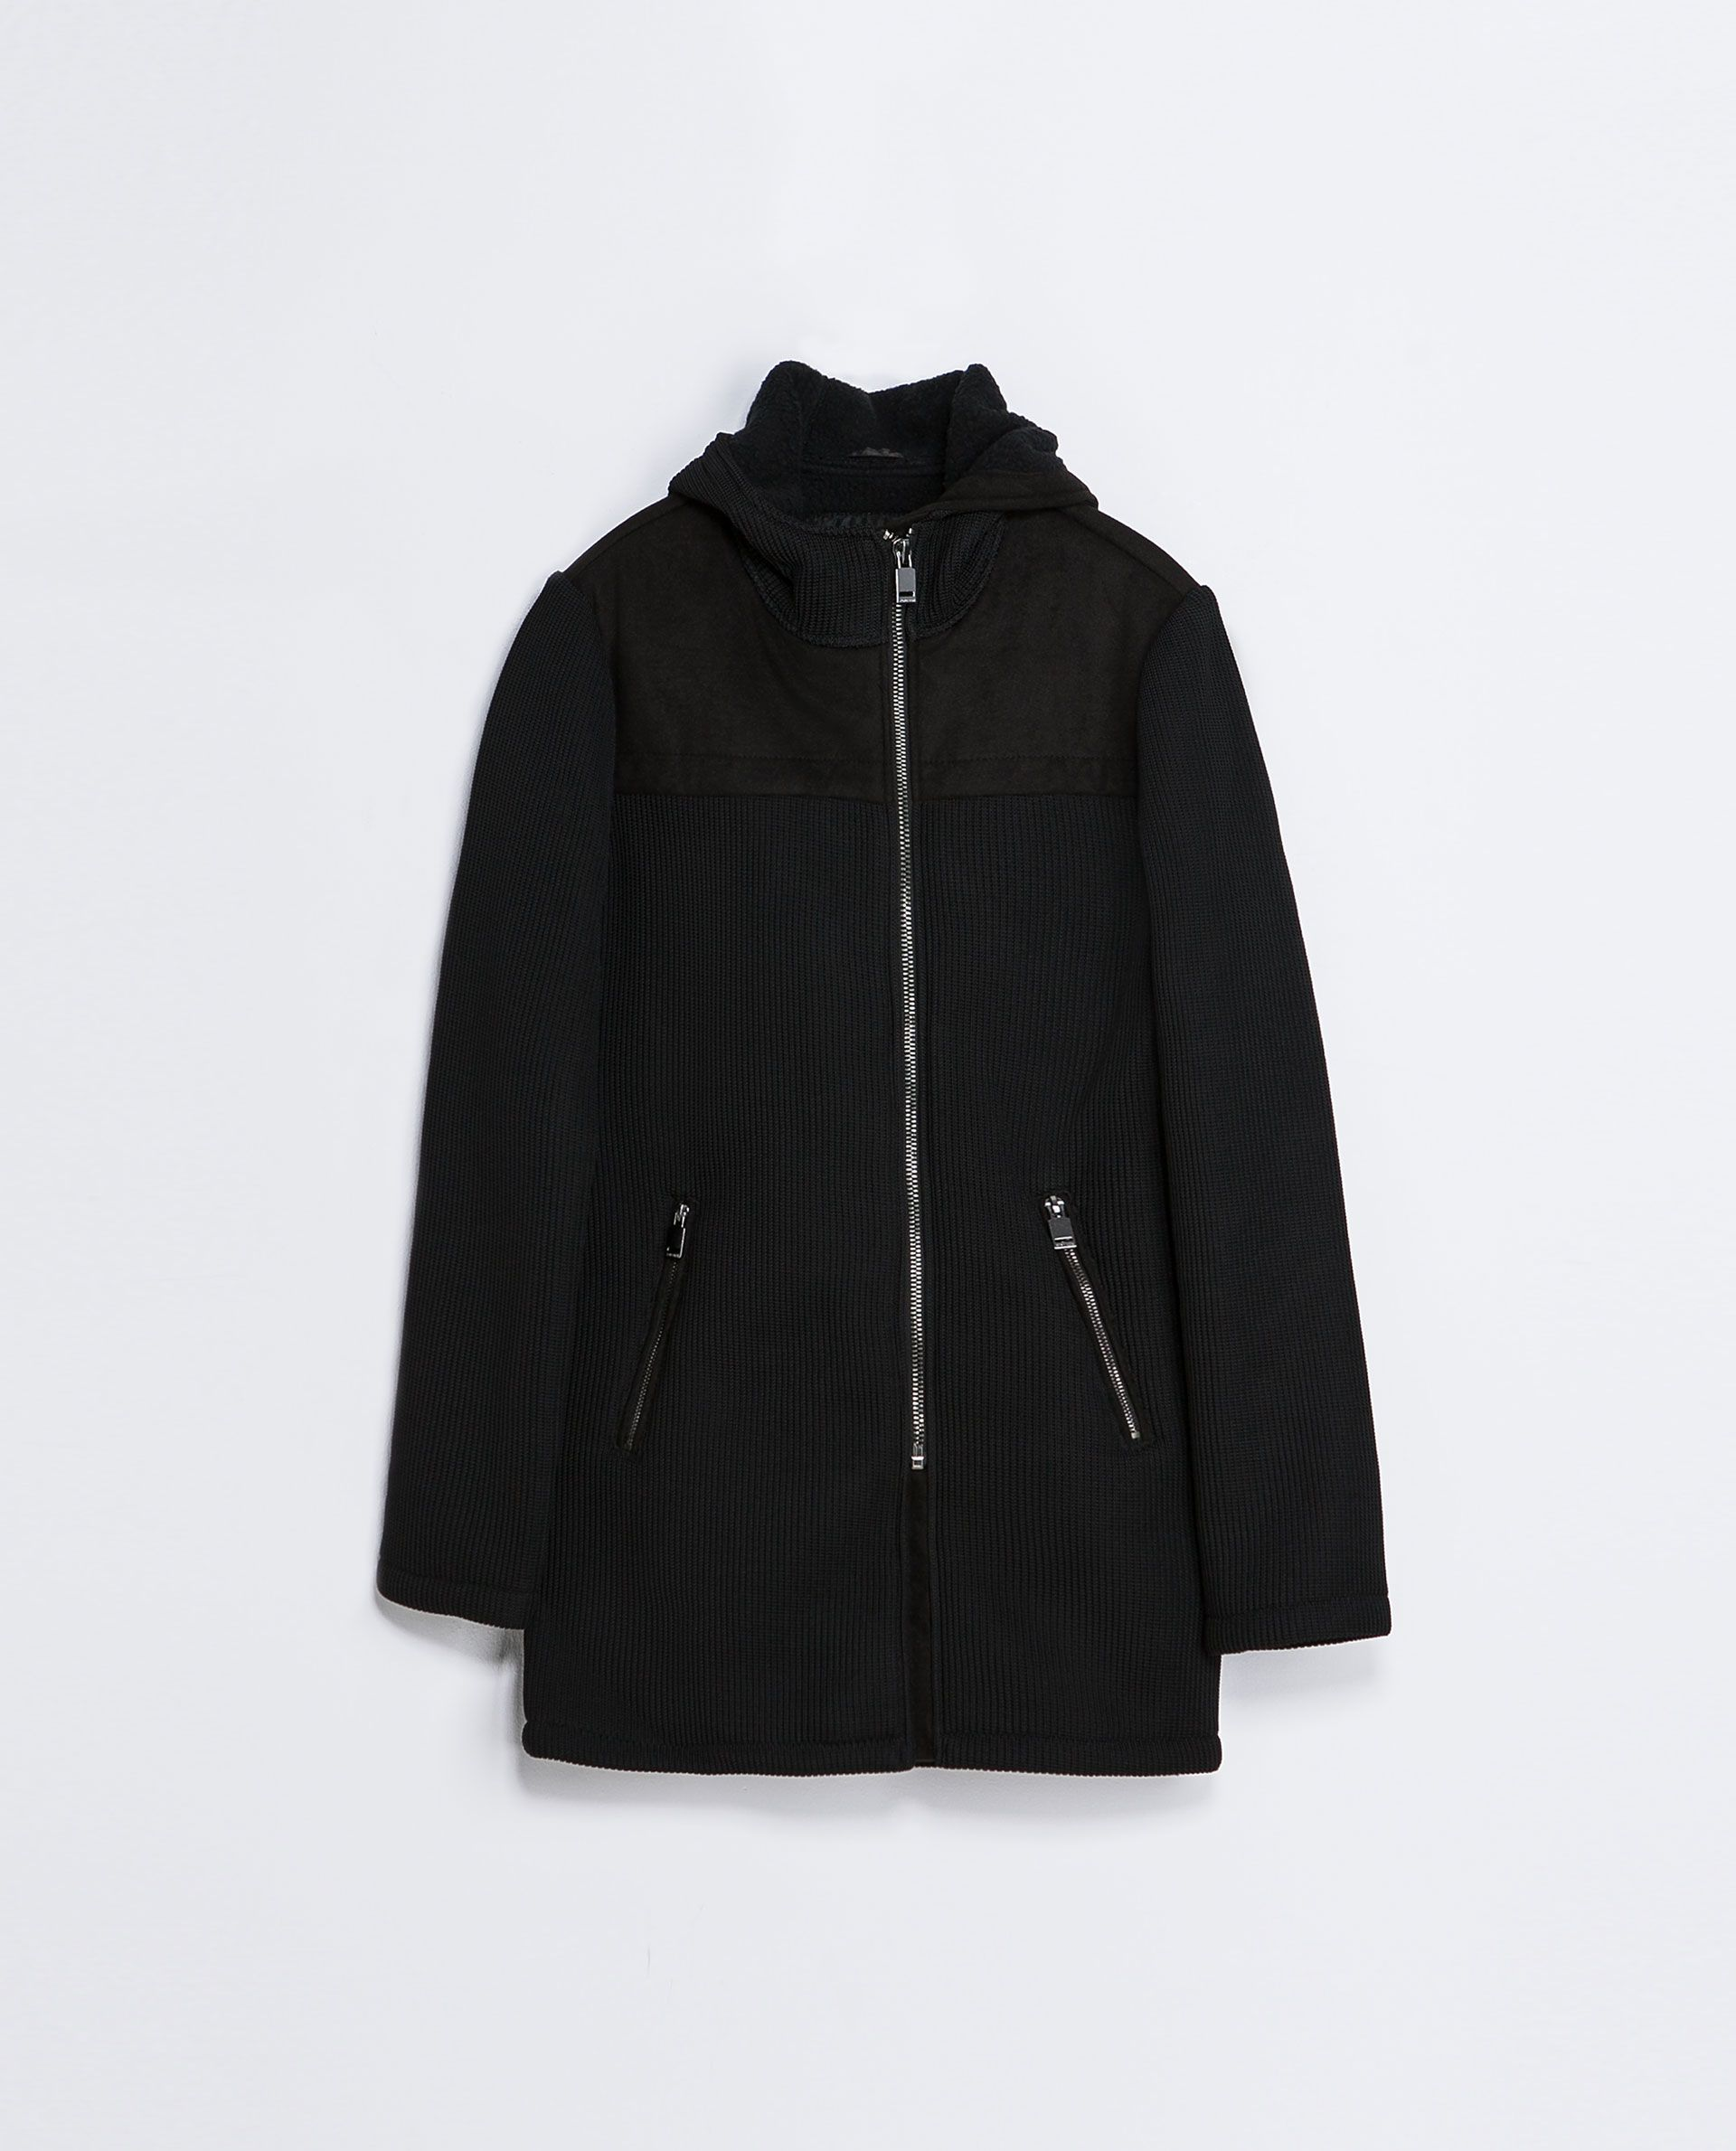 b332eb8d Zara KNITTED THREE QUARTER LENGTH COAT WITH HOOD Ref. 0706/325 179.00 CAD  OUTER SHELL 100% POLYESTER